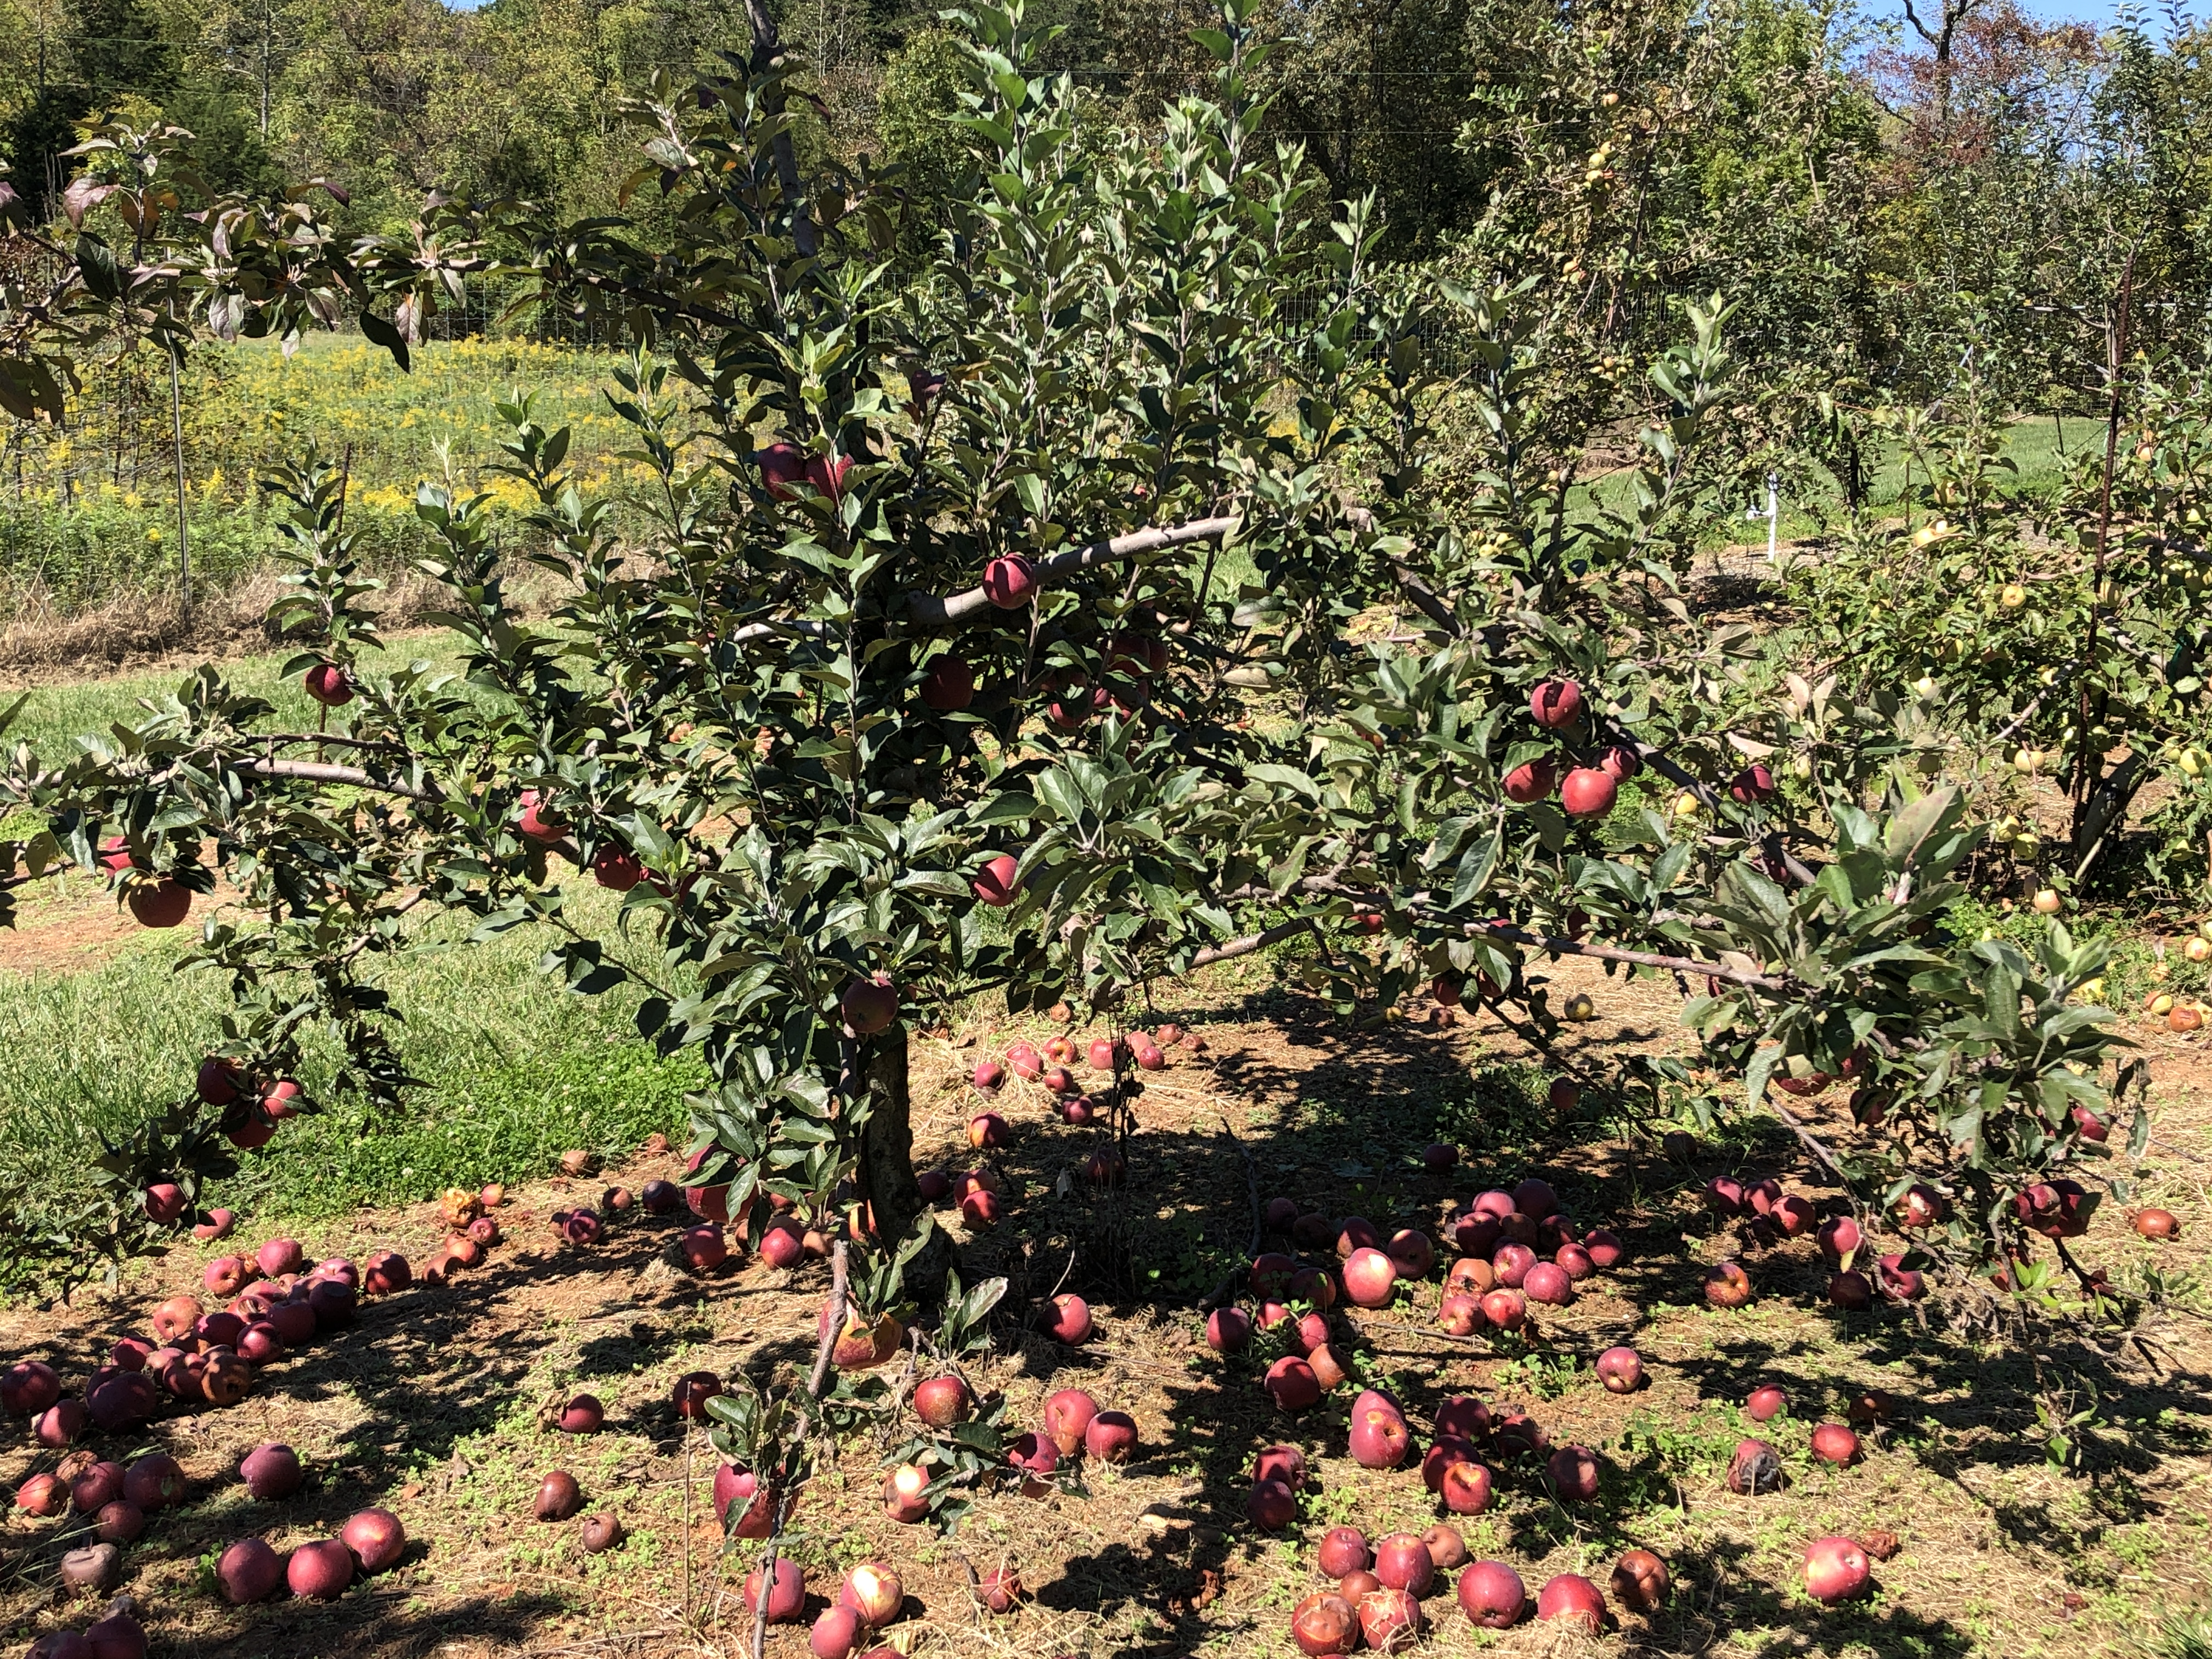 An apple tree with red apples on the branches and on the ground under the tree